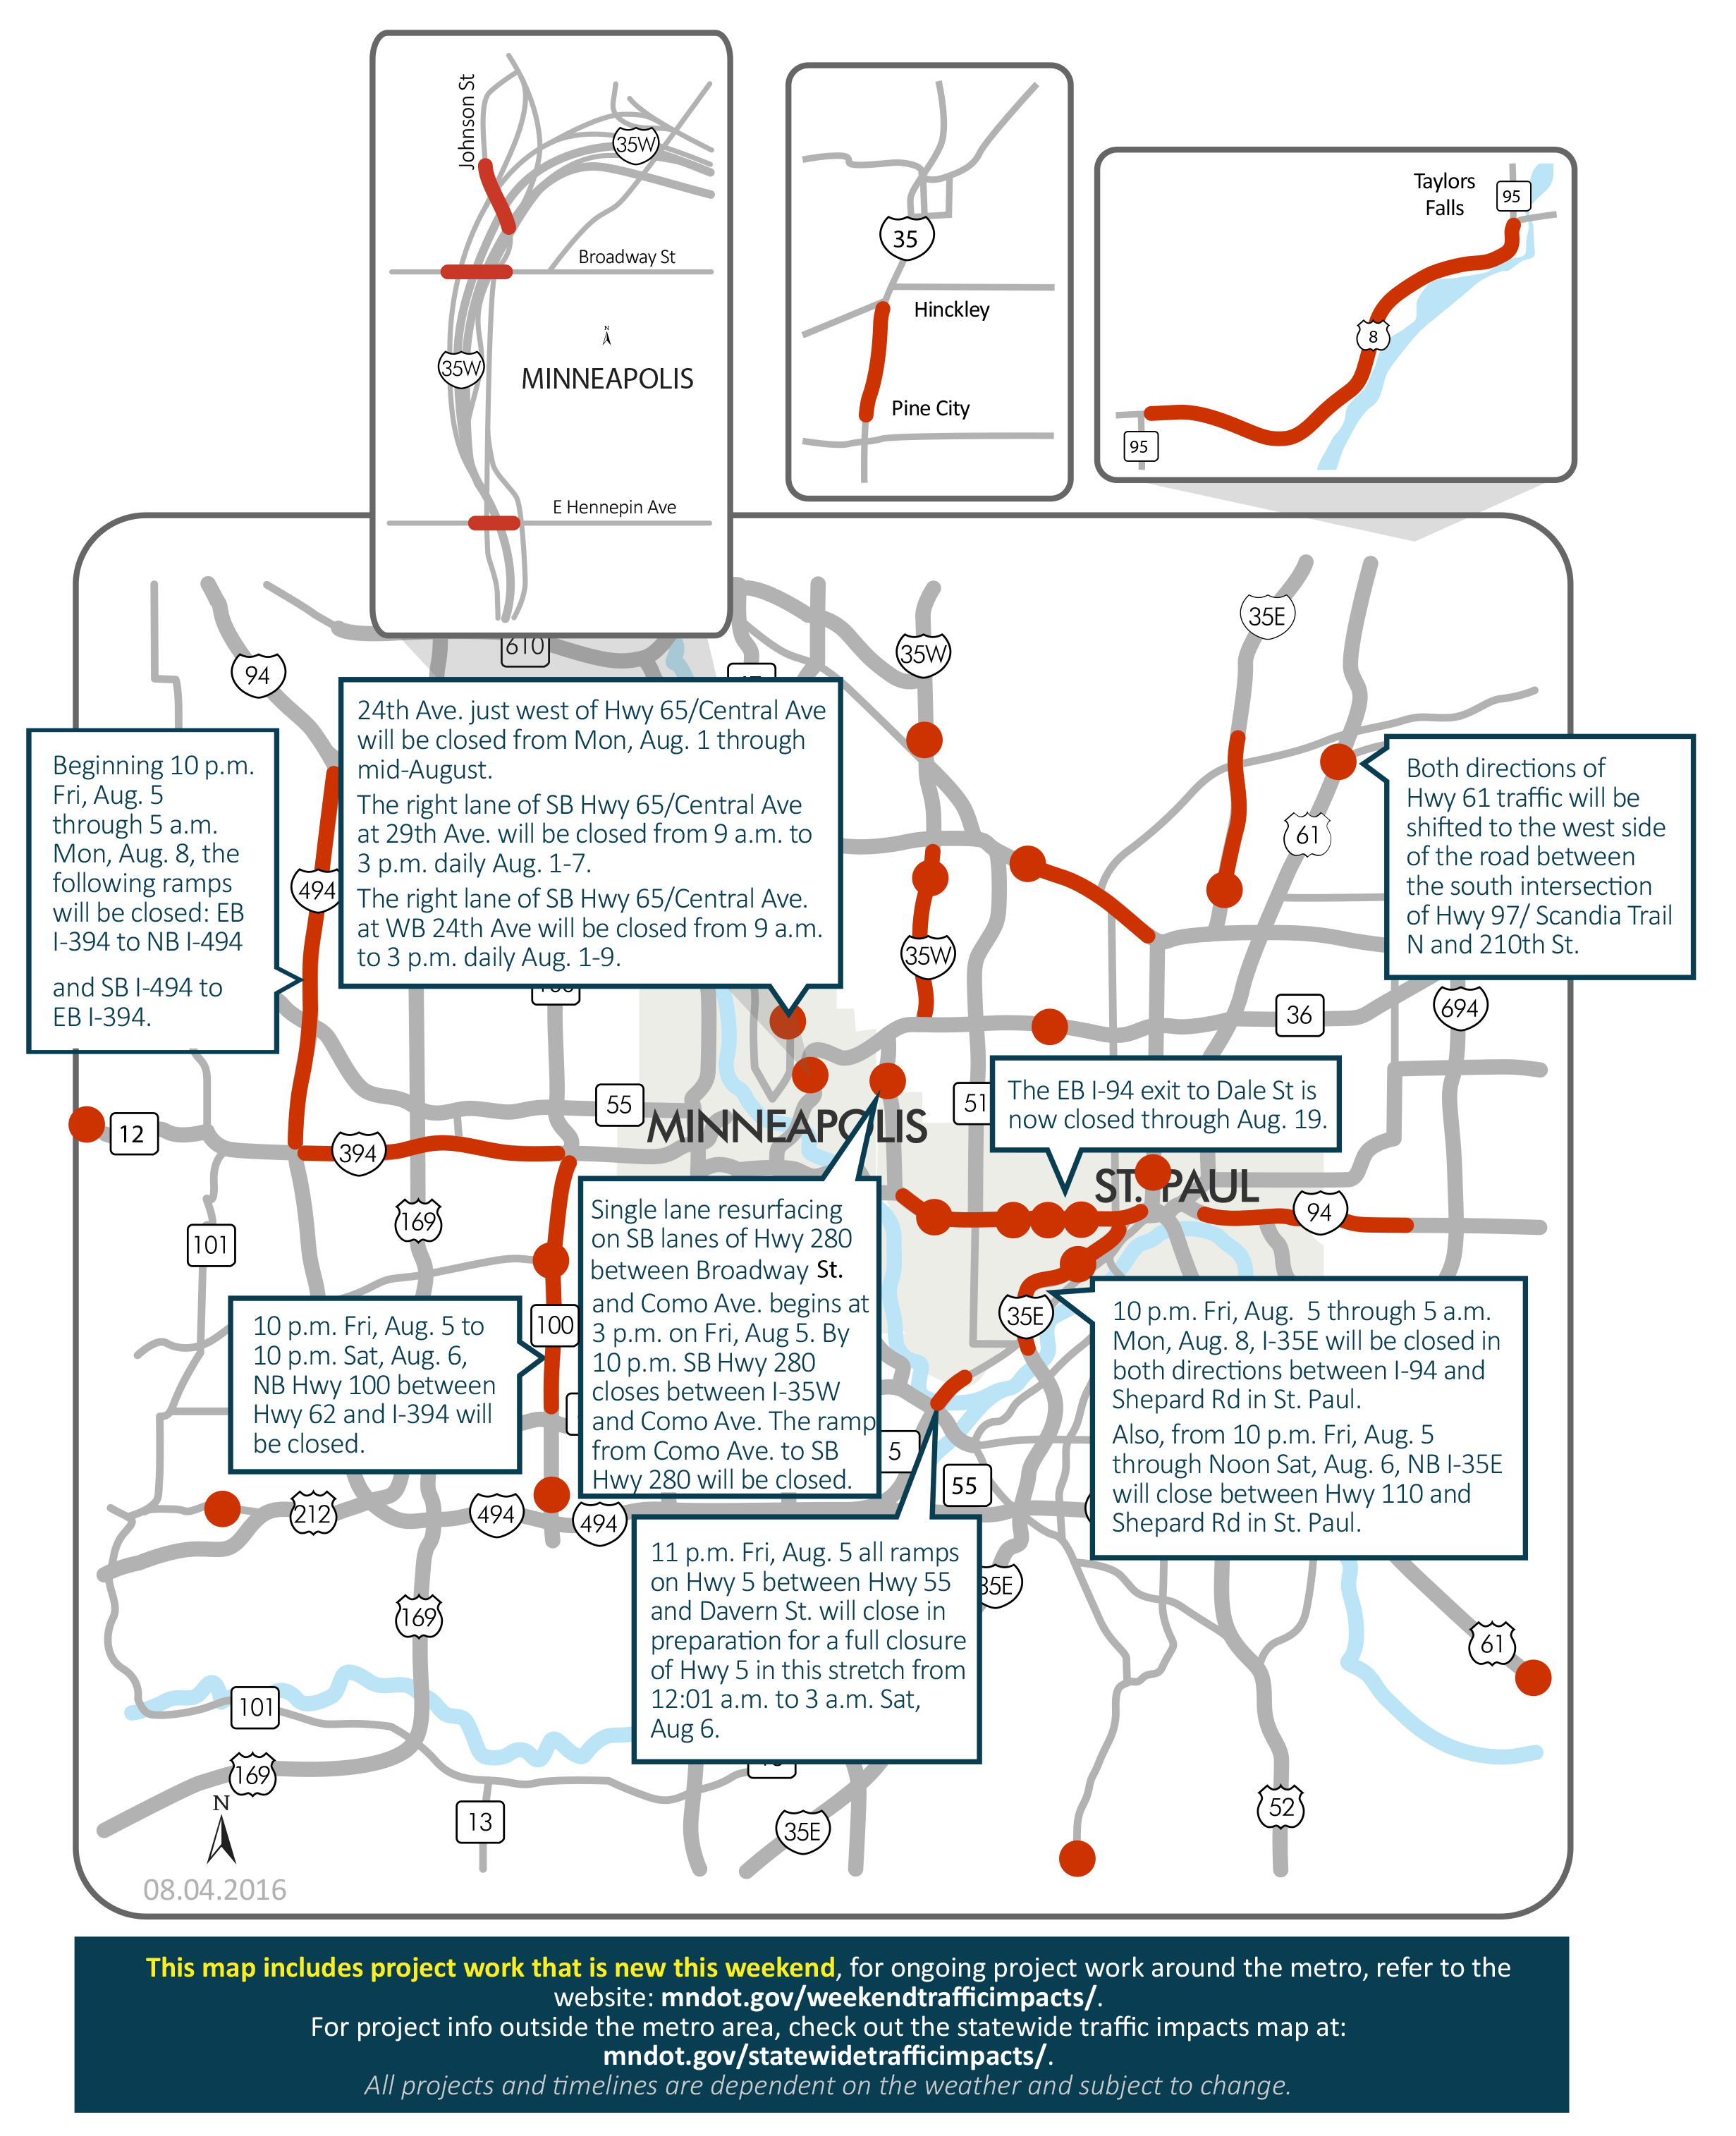 St Paul Traffic Map.I 35e Hwy 280 Closures Top Weekend Road Woes Mpr News